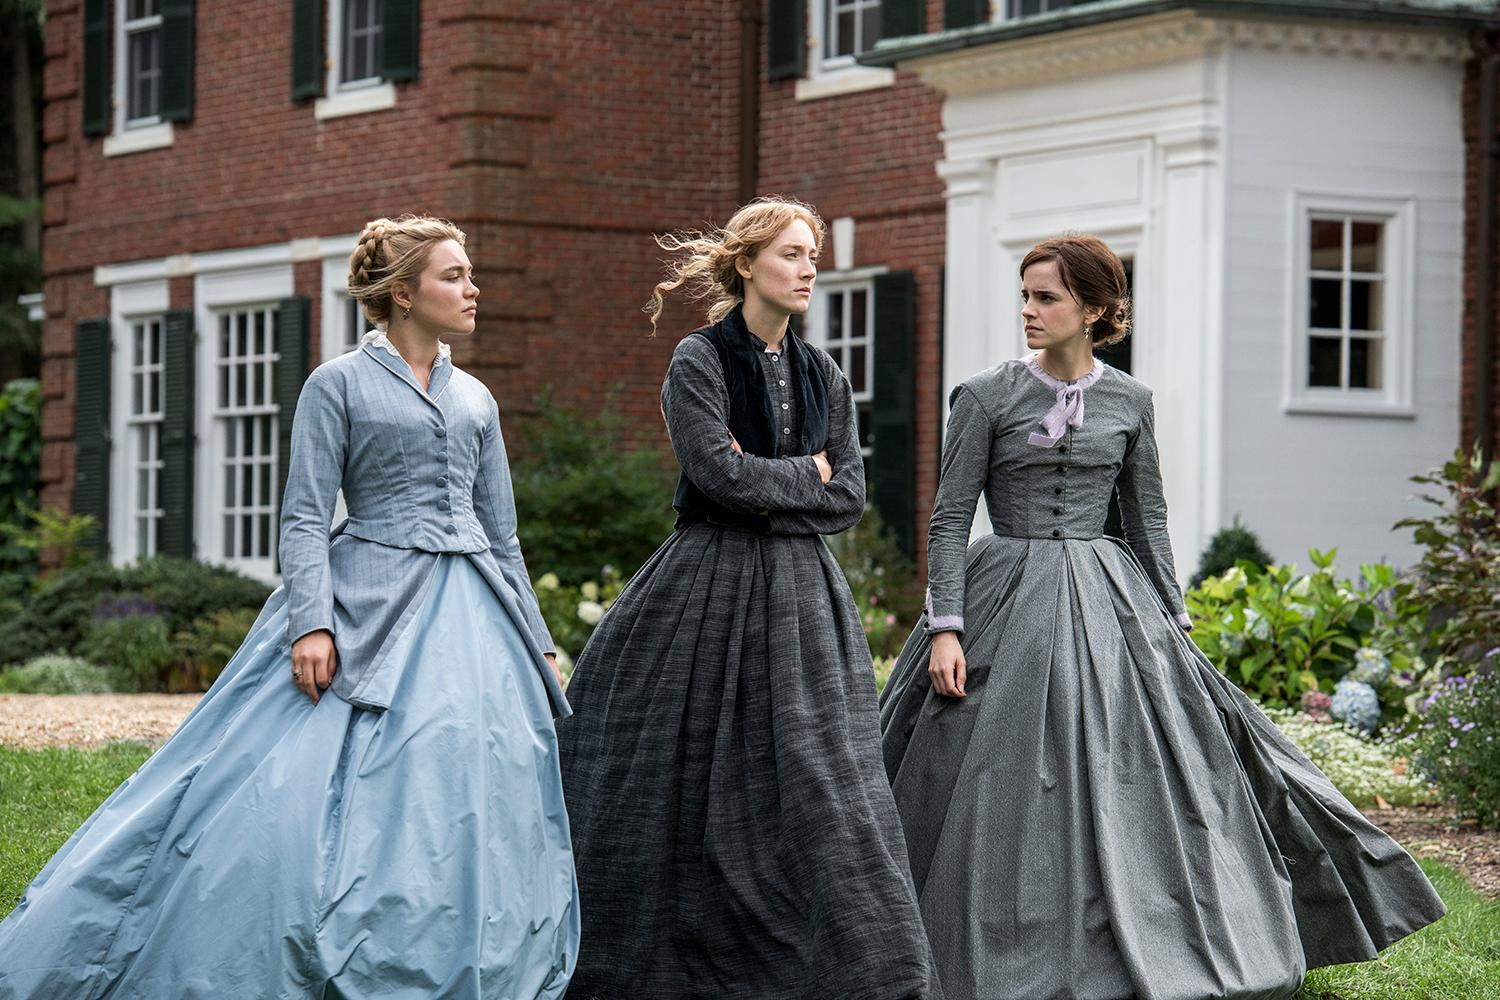 Florence Pugh, Saoirse Ronan and Emma Watson in Greta Gerwig's LITTLE WOMEN.{ }(Image: Wilson Webb / Sony Pictures)